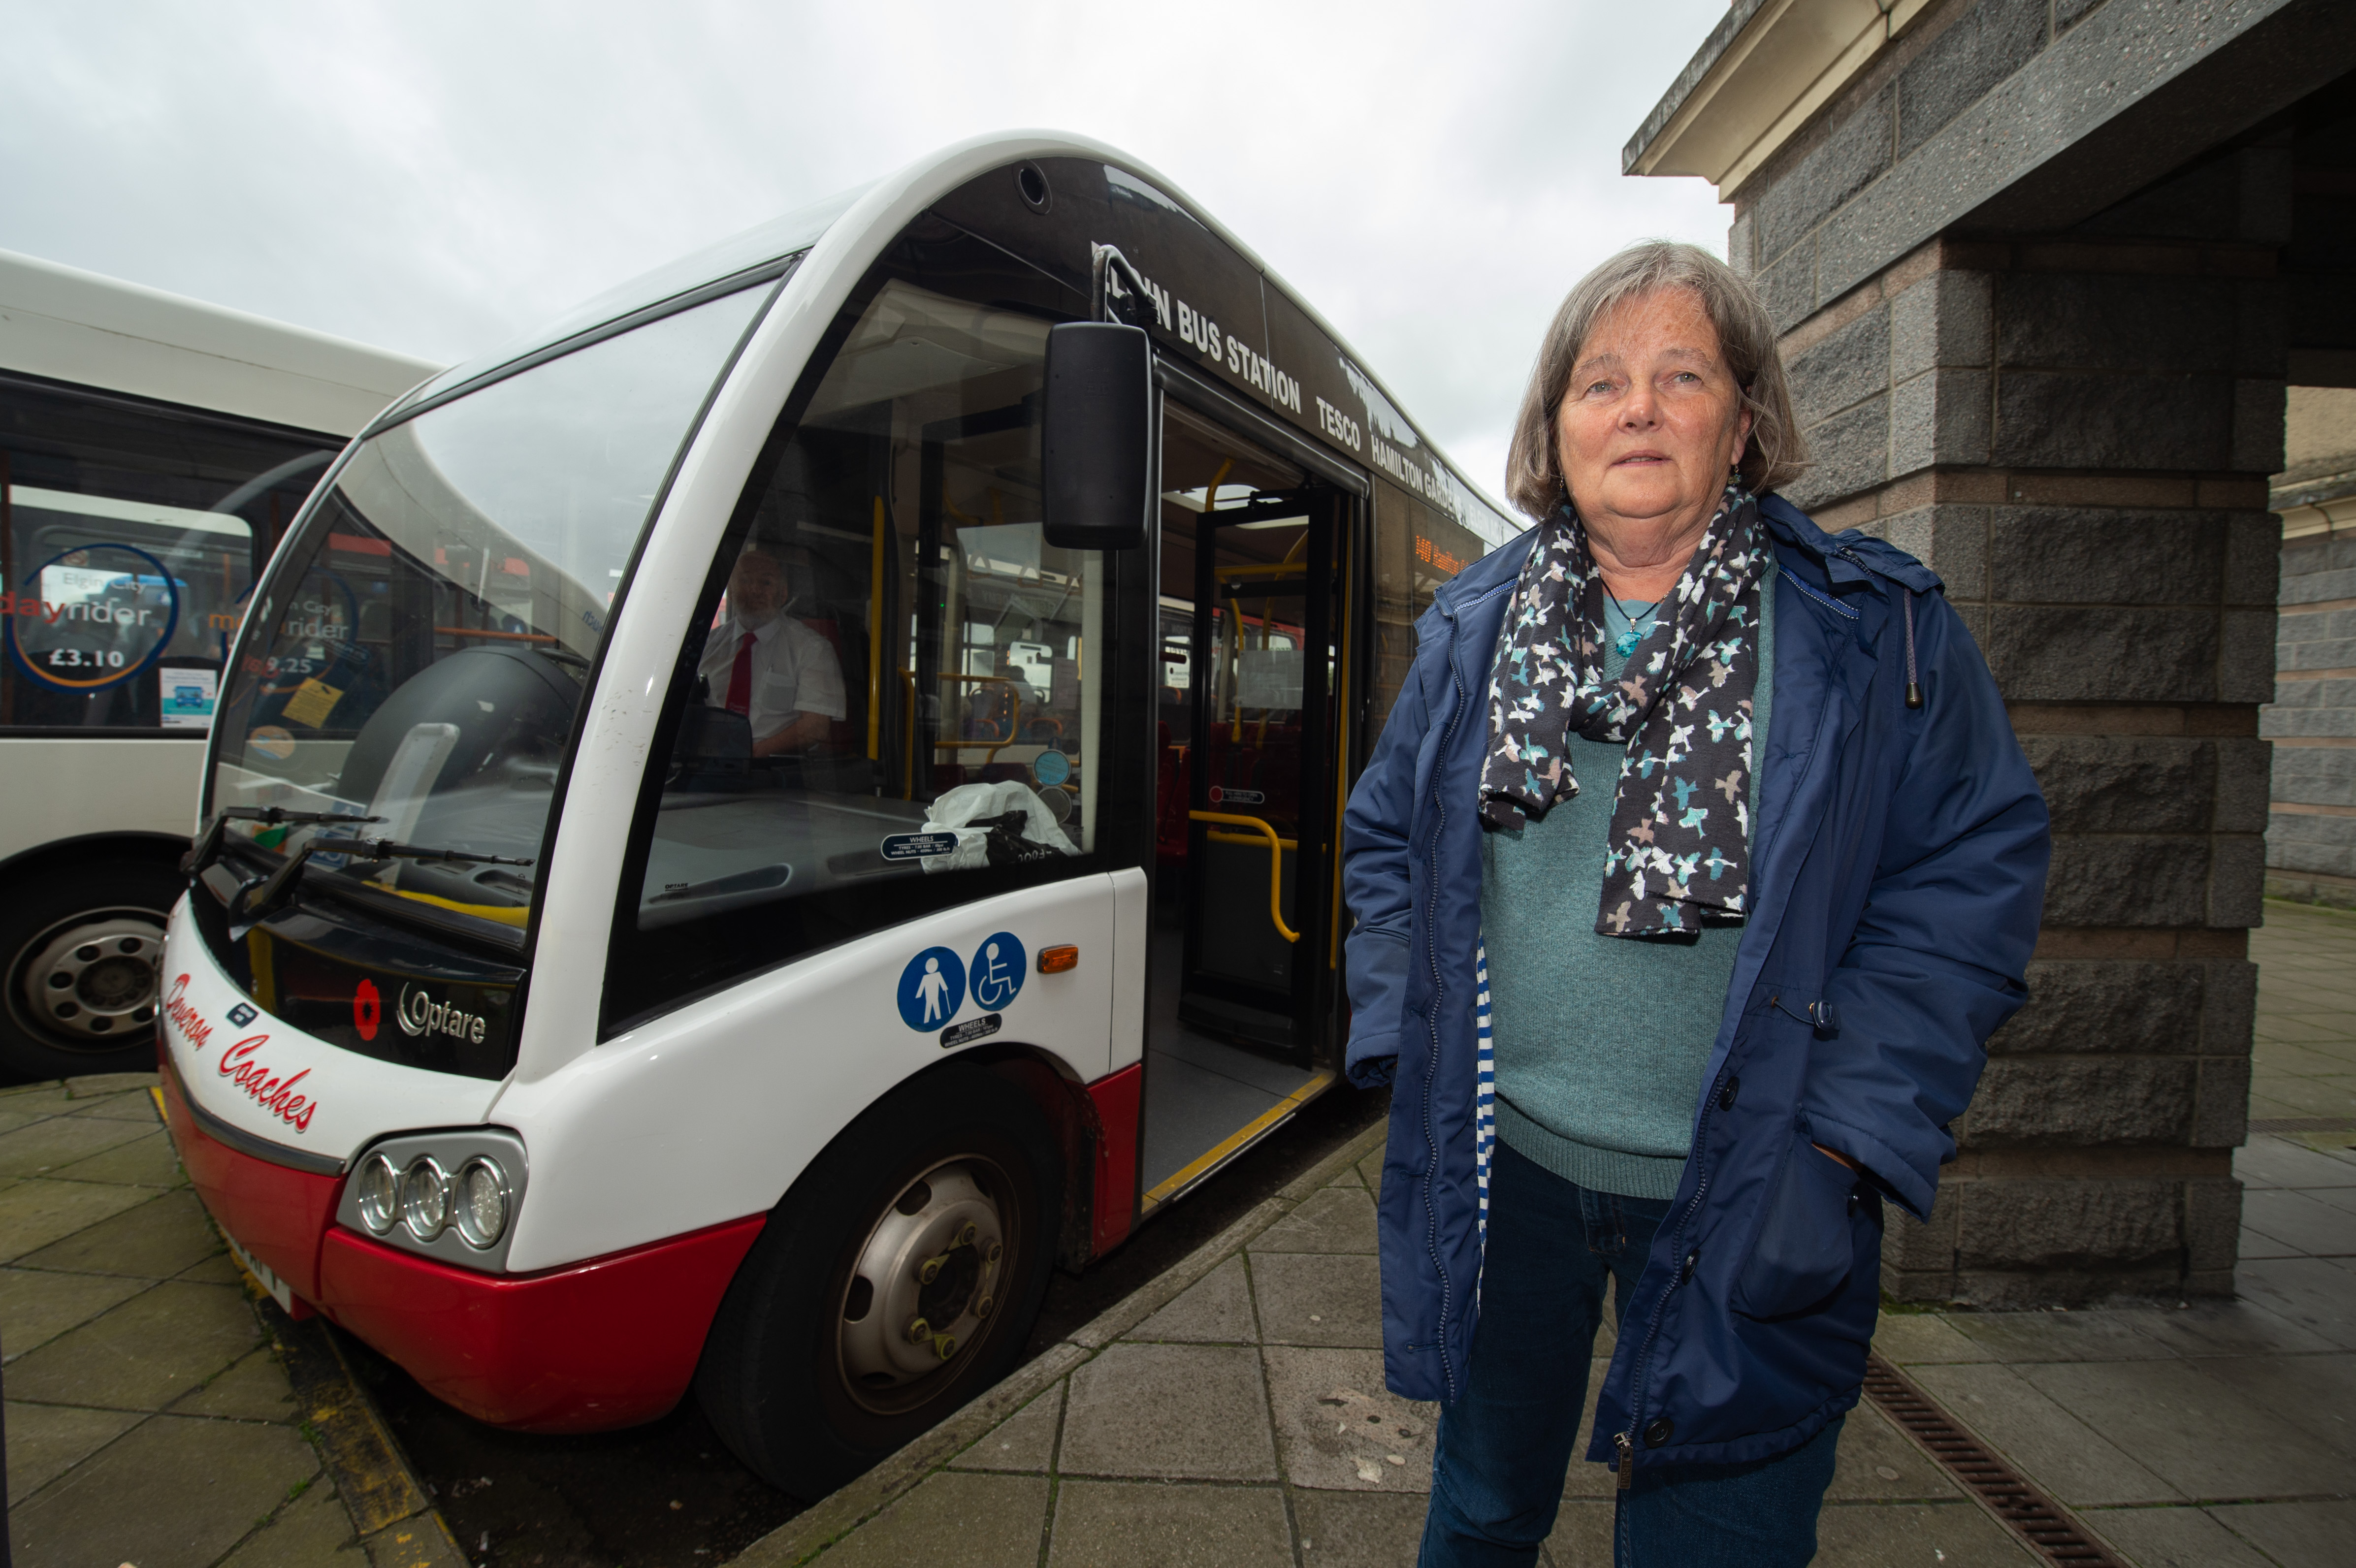 Regular bus passenger Sara Marsh is fighting for the 340 service in Elgin to be saved.